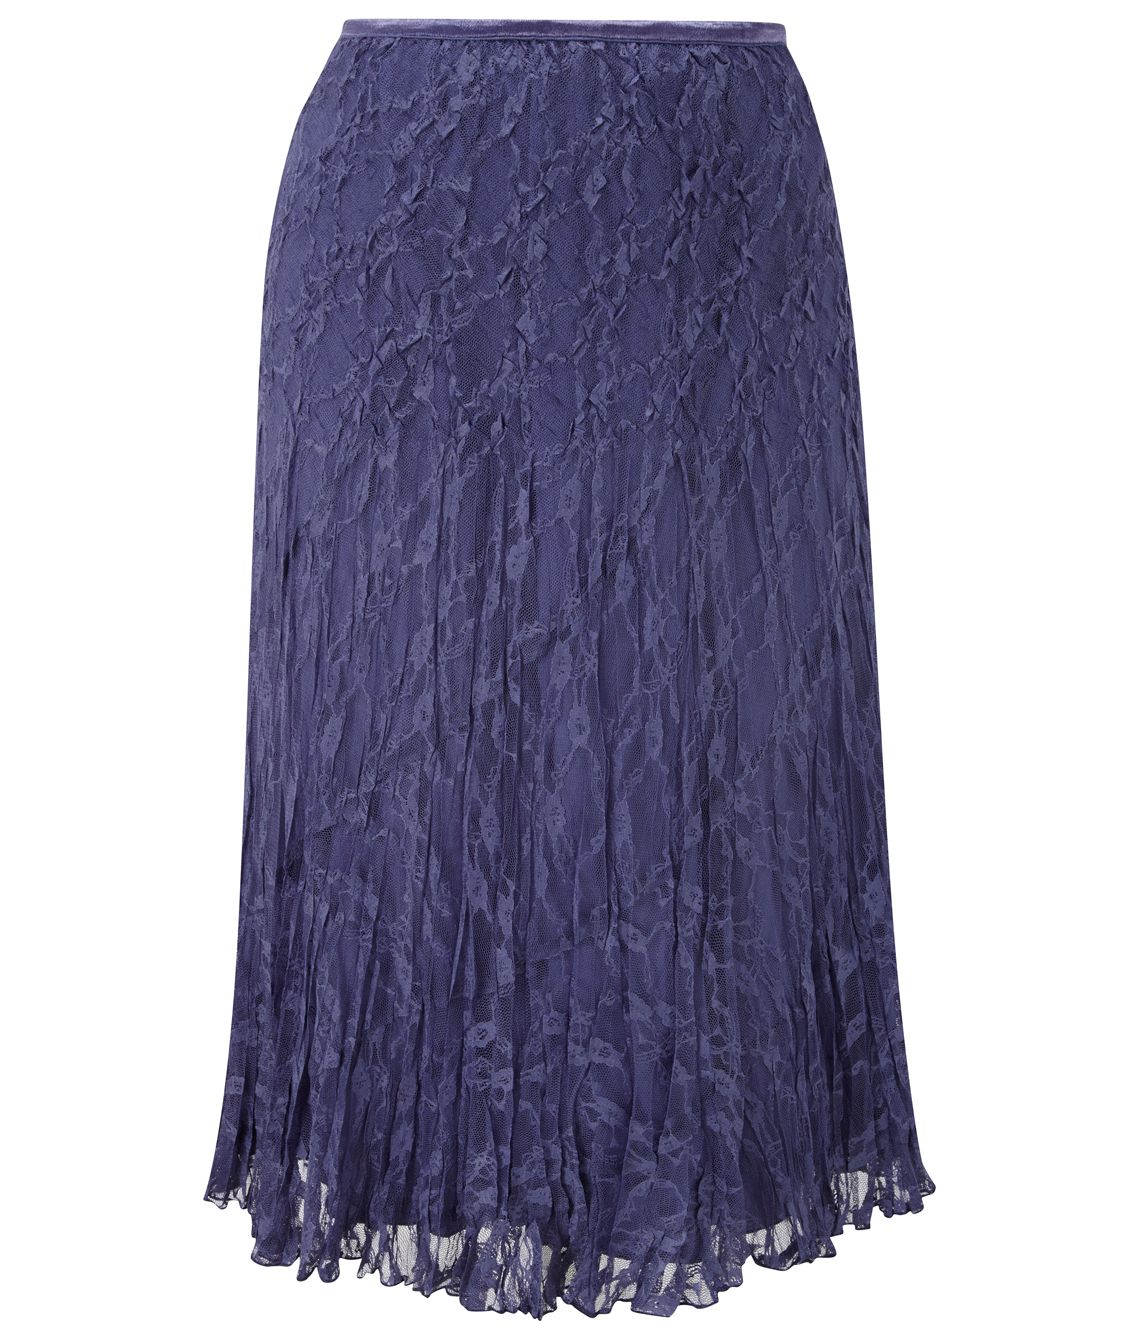 cc petite lavender crinkle lace skirt in purple lavender